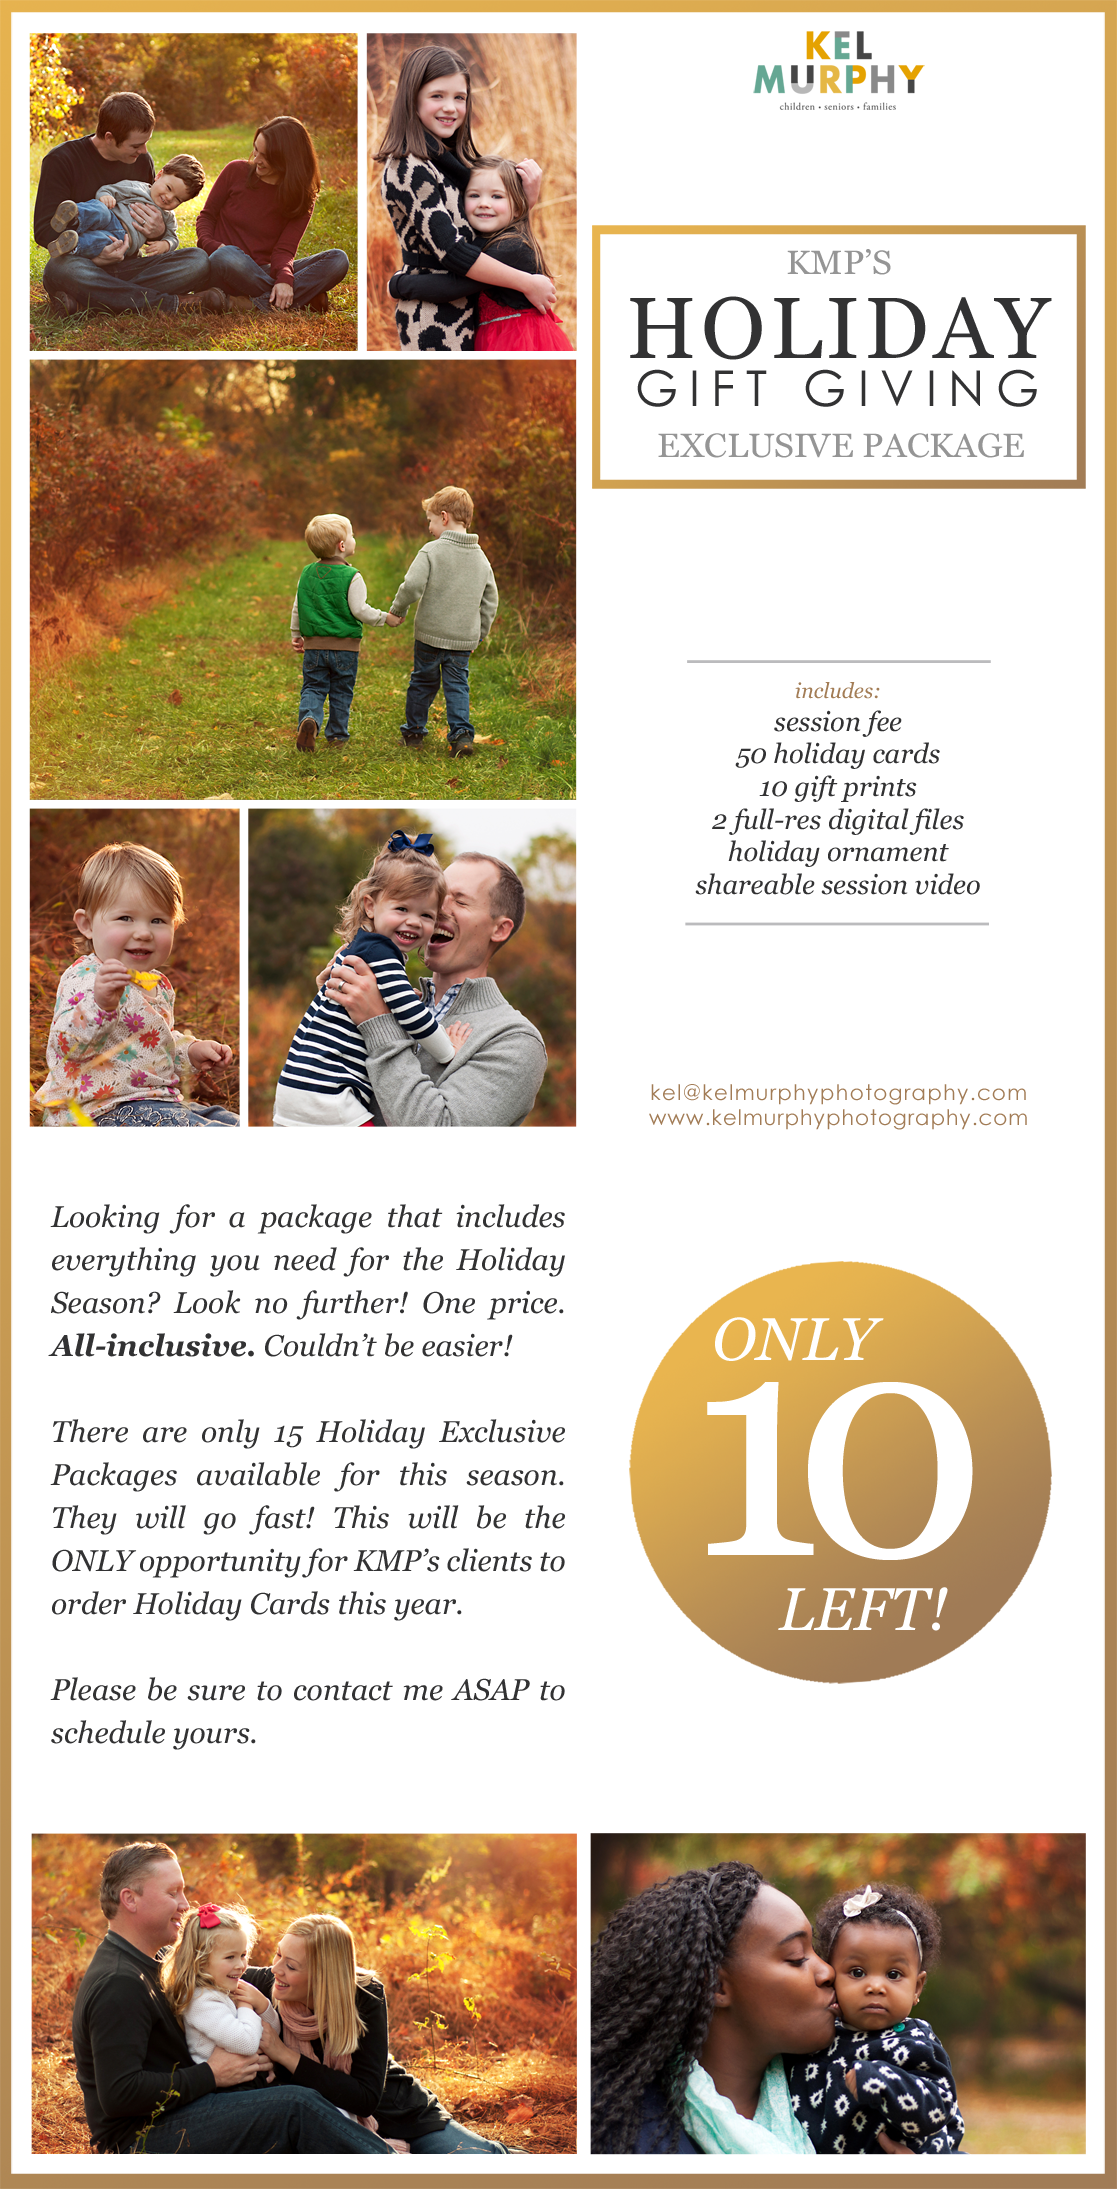 Kel-Murphy-Photography-KMP-Holiday-Exclusive-Package-Christmas-Cards-2015-Philadelphia-Child-Photographer-Montgomery-County-Bucks-County-Family-Photo-Session-mini-session-all-inclusive-2